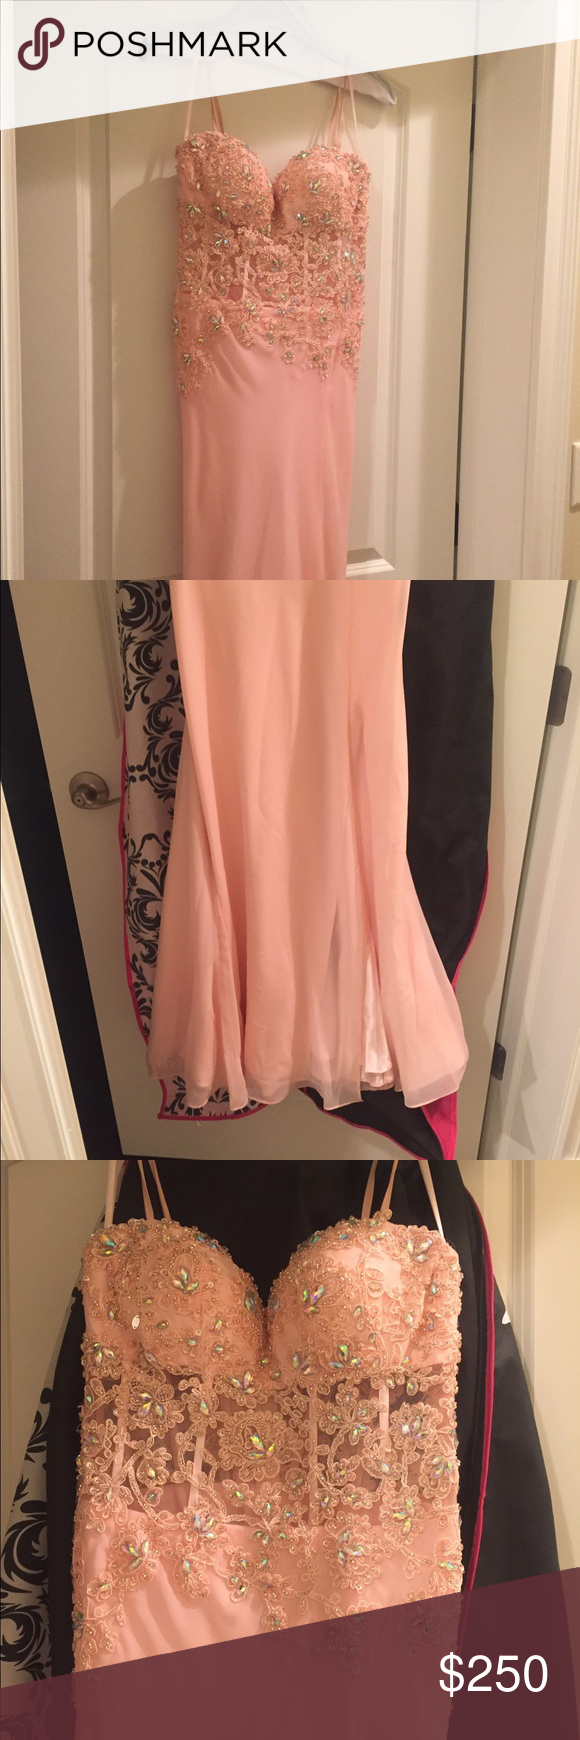 Prom dress size pale pink dress with sequins tailored for